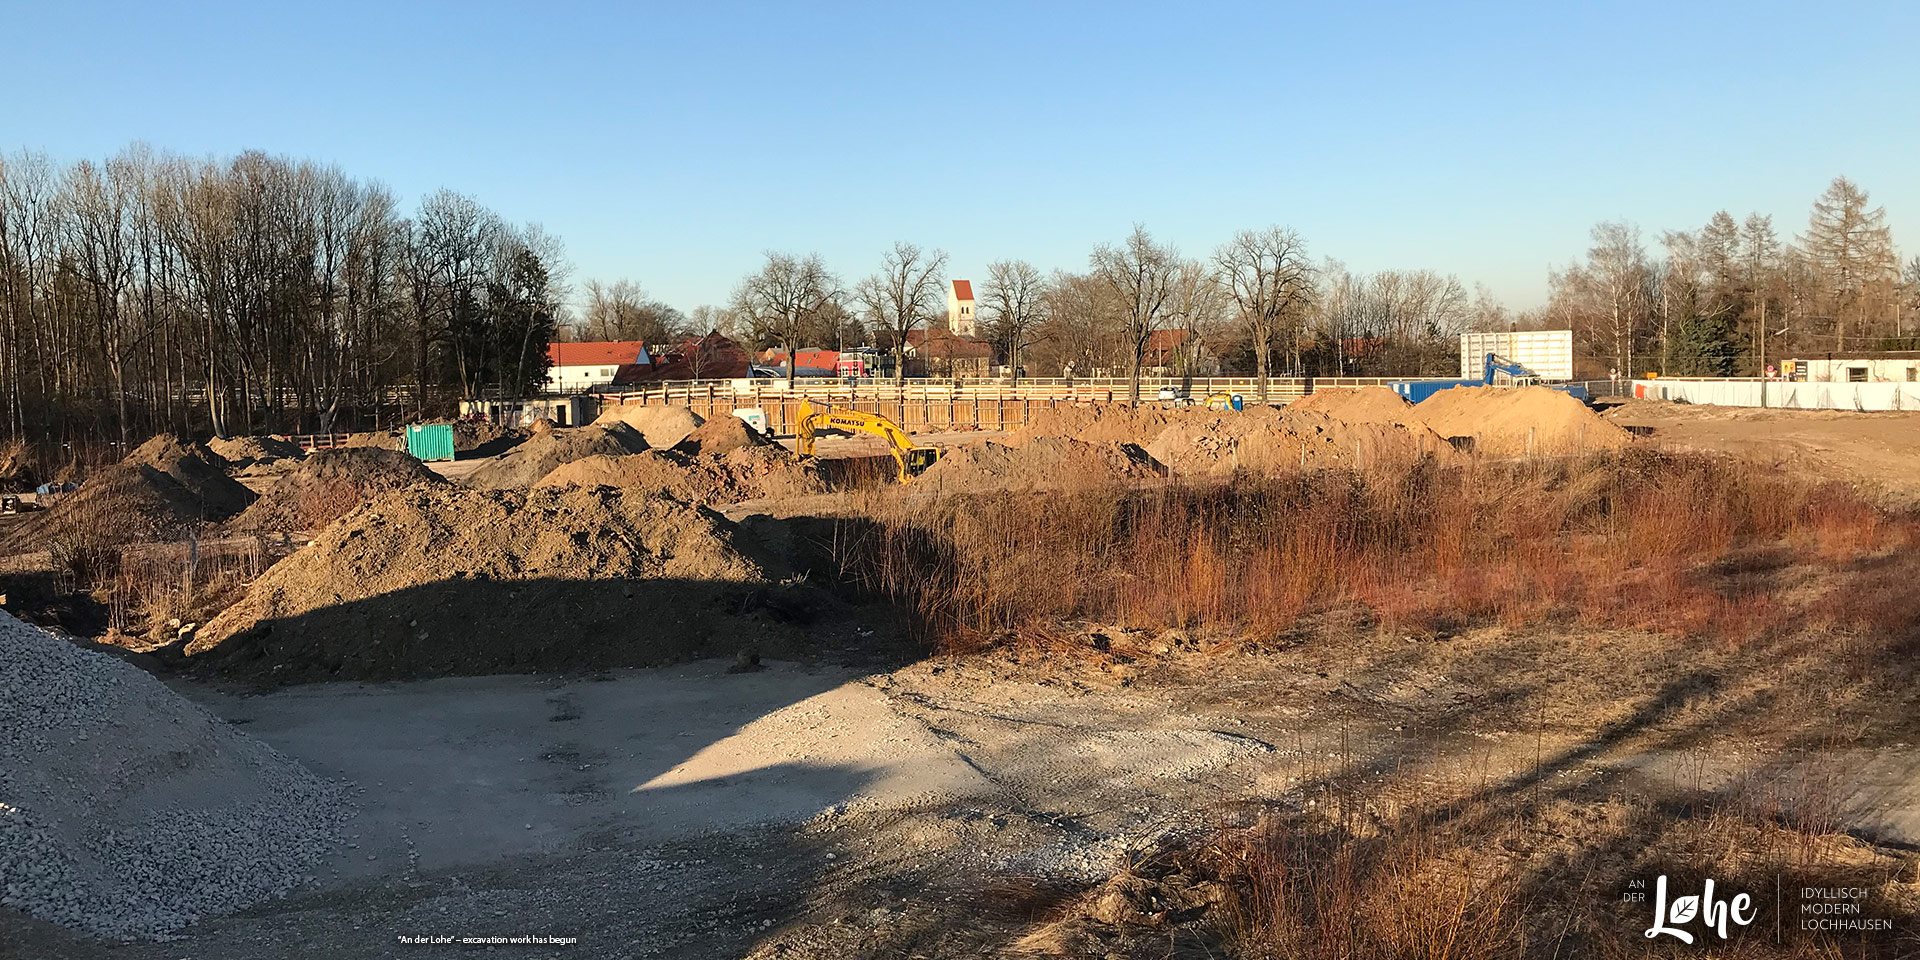 """An der Lohe"" in Munich-Lochhausen: excavation work has begun"